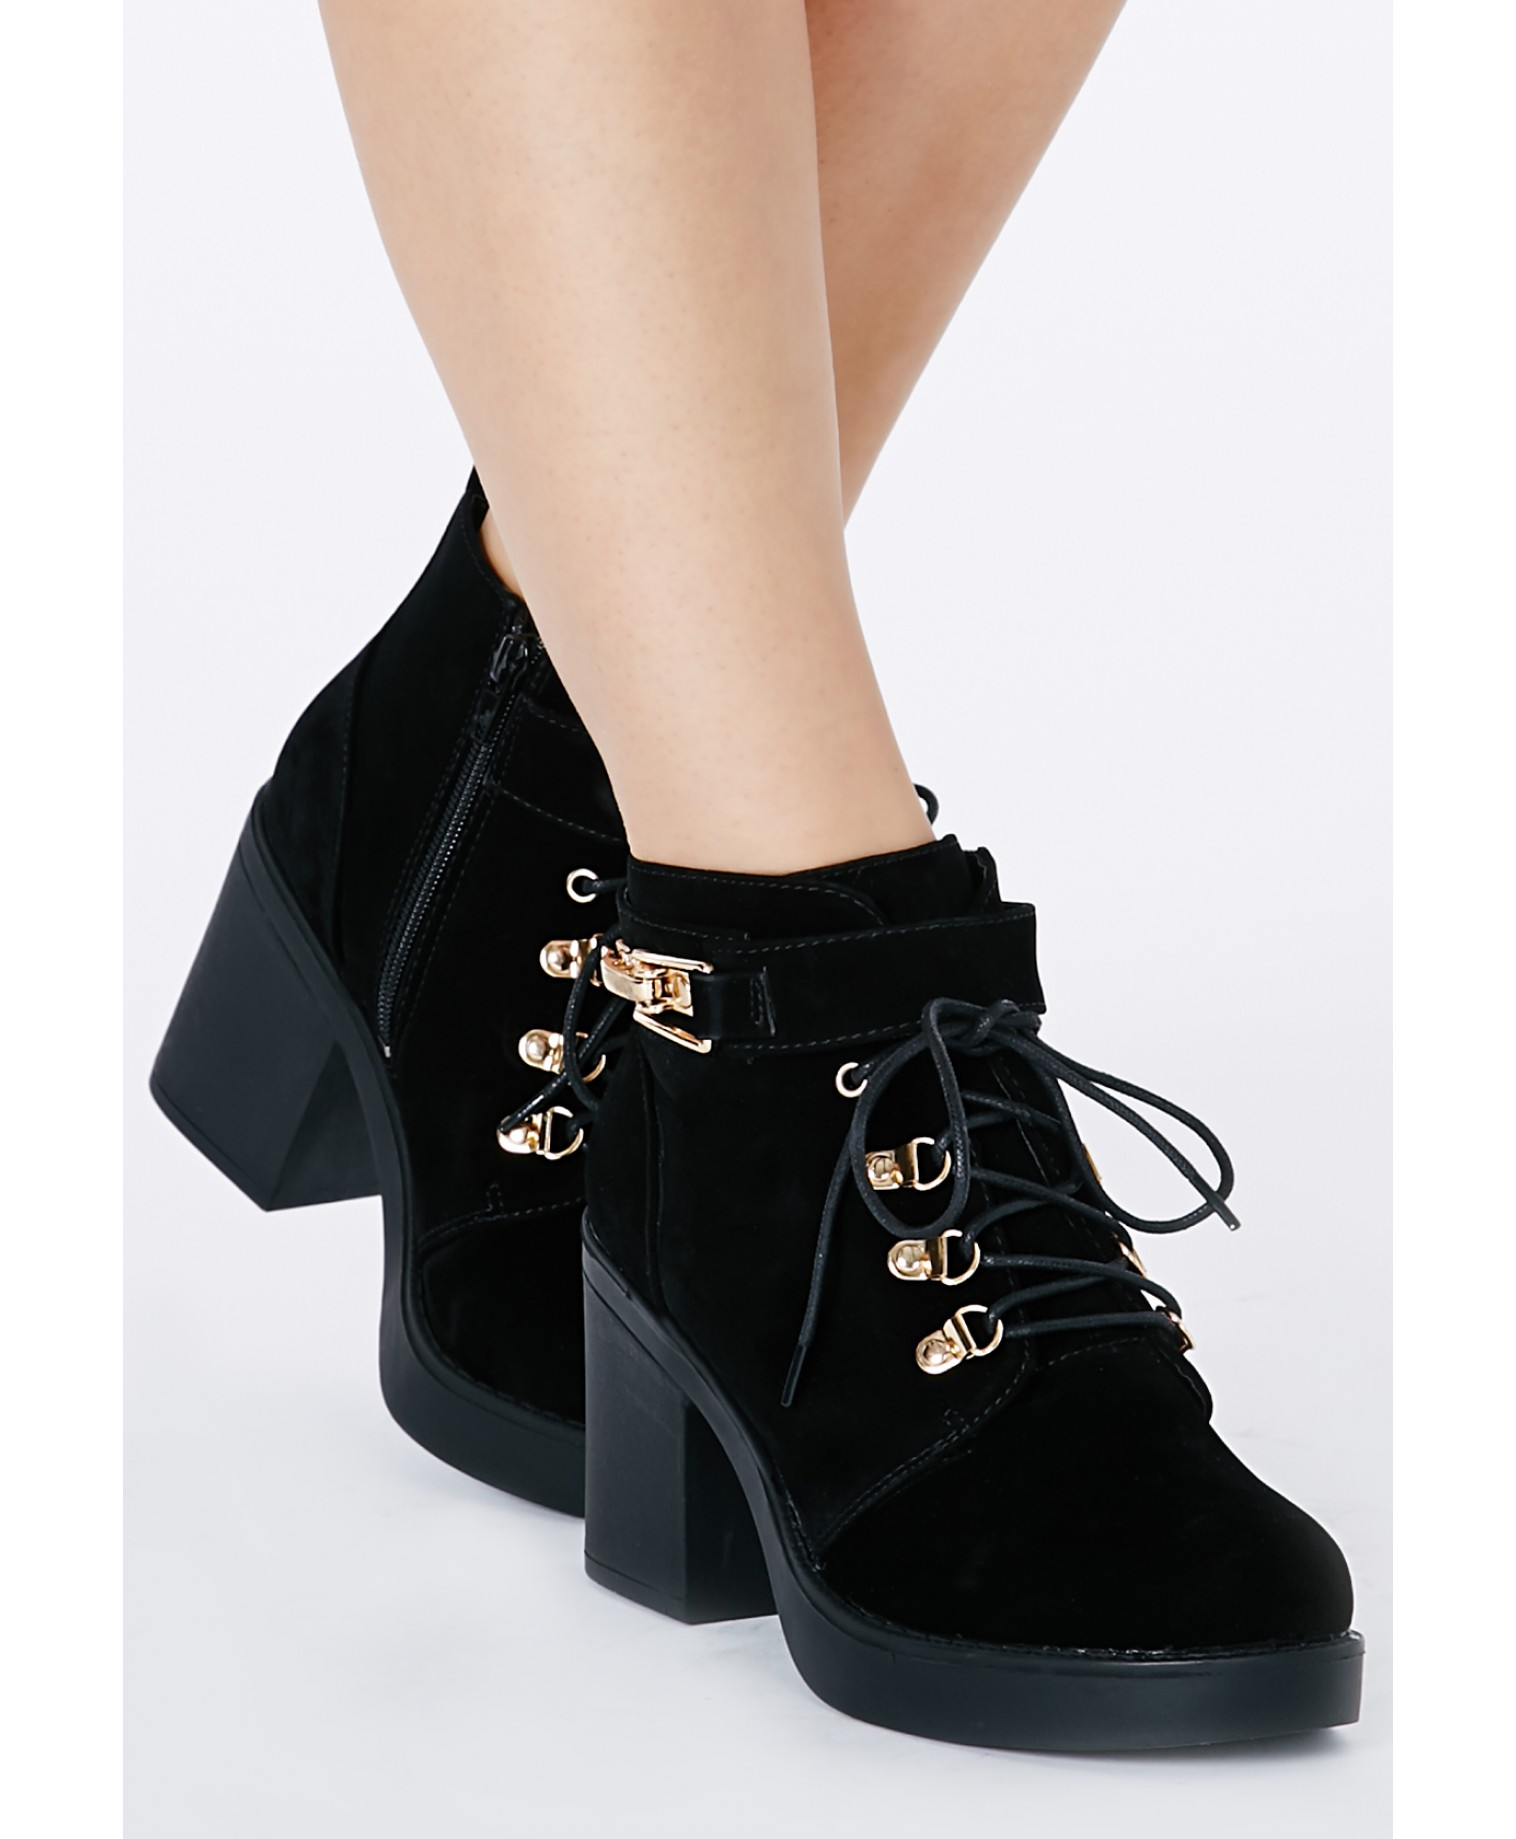 Felisimina black suede ankle boots with buckle detail 2